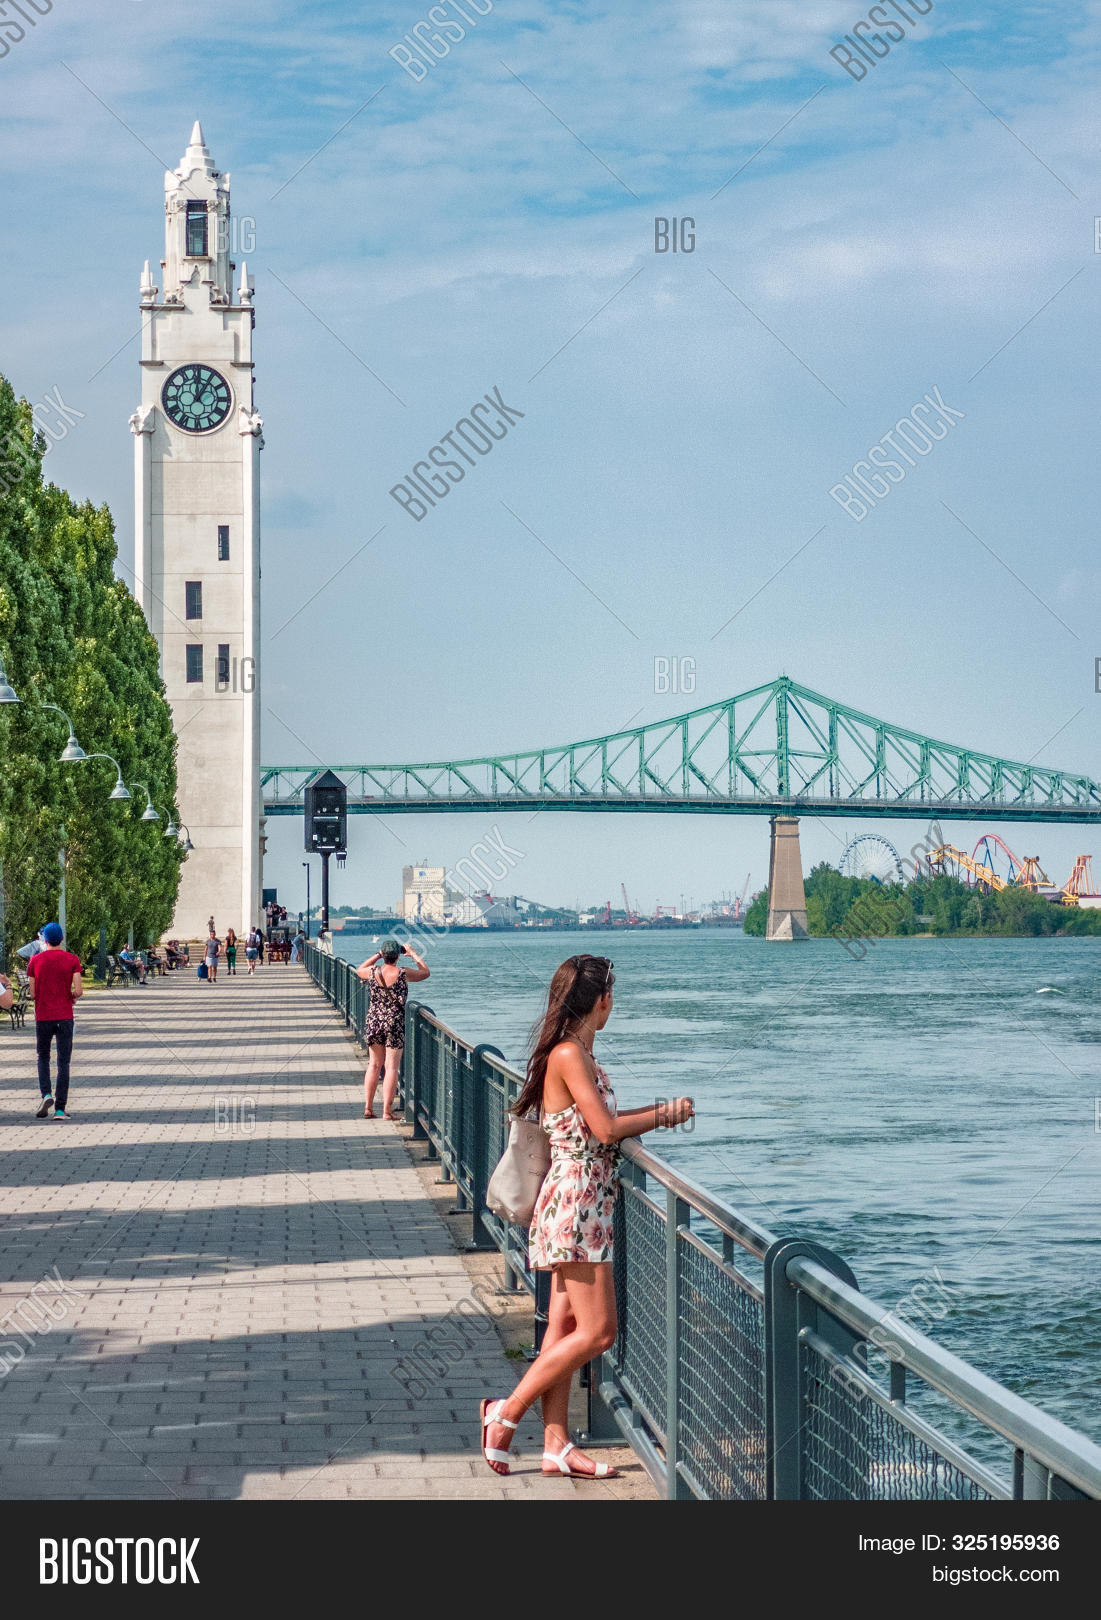 Montreal Old Port Image & Photo Free Trial   Bigstock